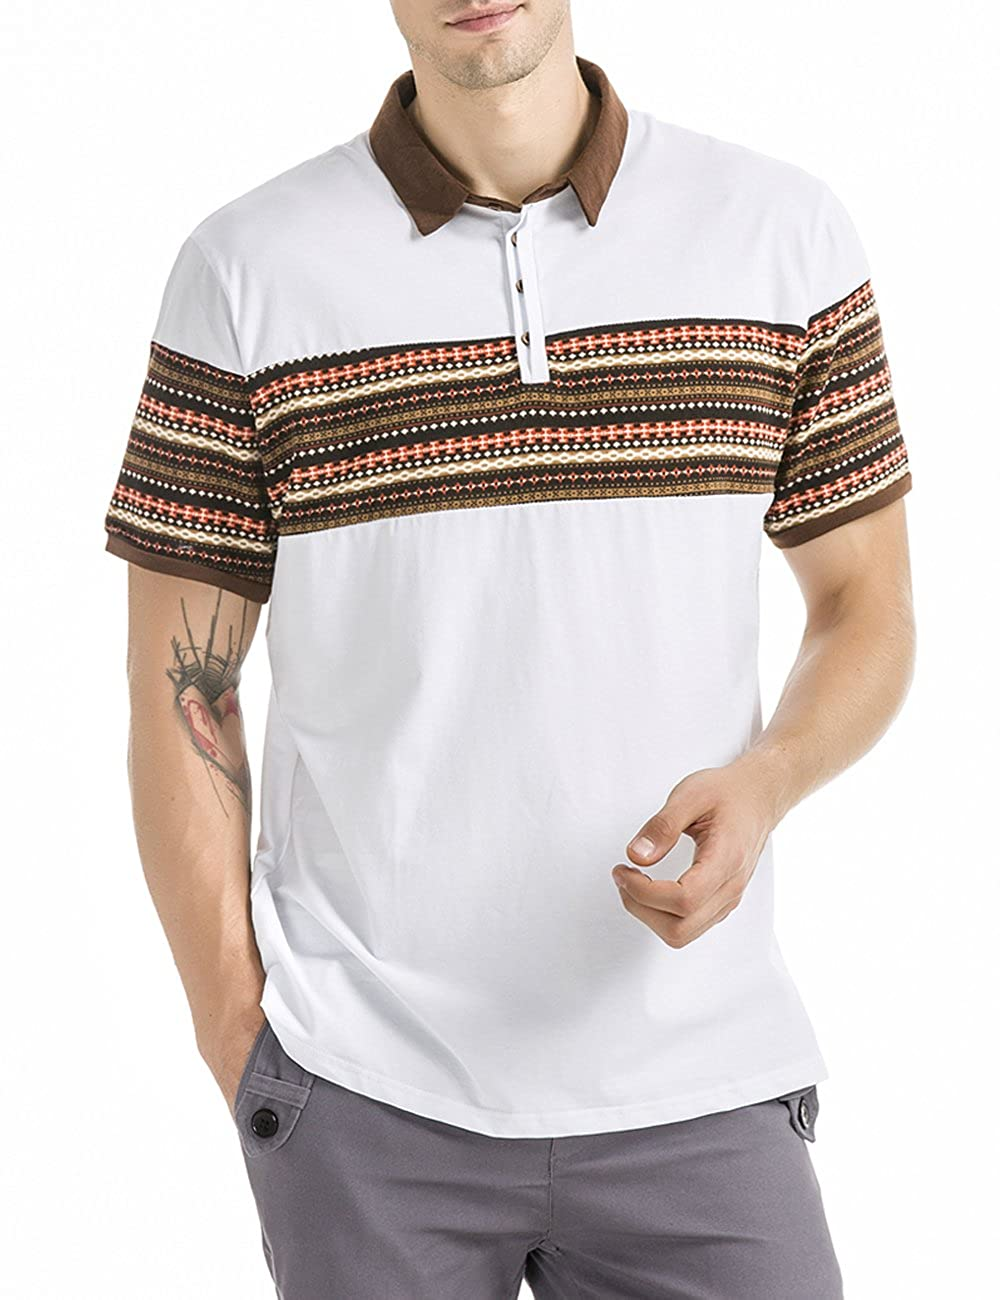 1950s Mens Shirts | Retro Bowling Shirts, Vintage Hawaiian Shirts Mens retro print polo short sleeve t-shirts $13.97 AT vintagedancer.com